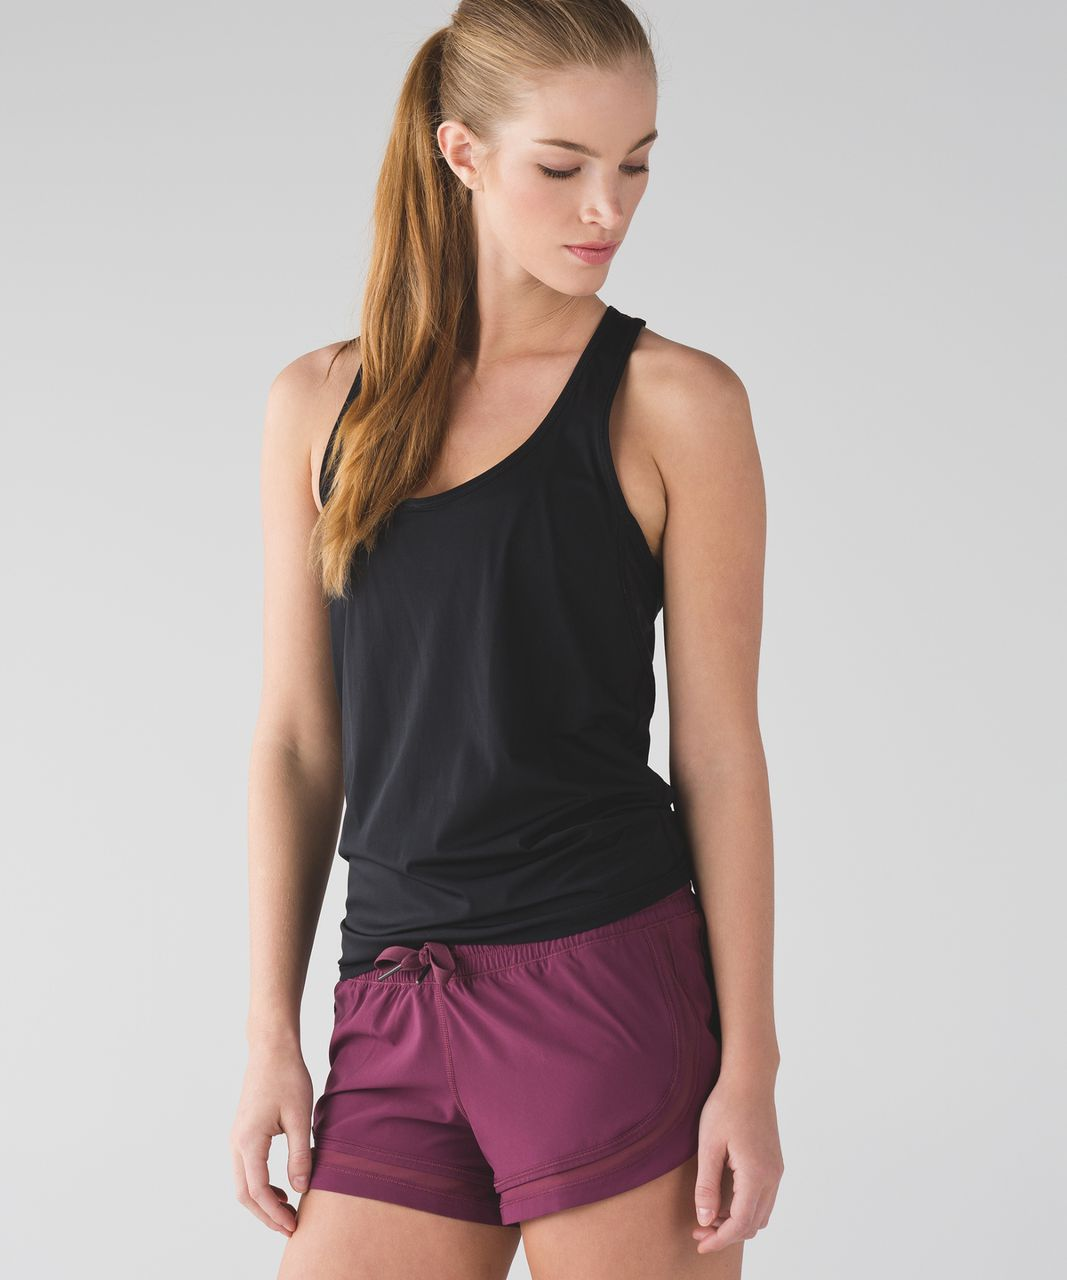 Lululemon Make A Move Short - Red Grape